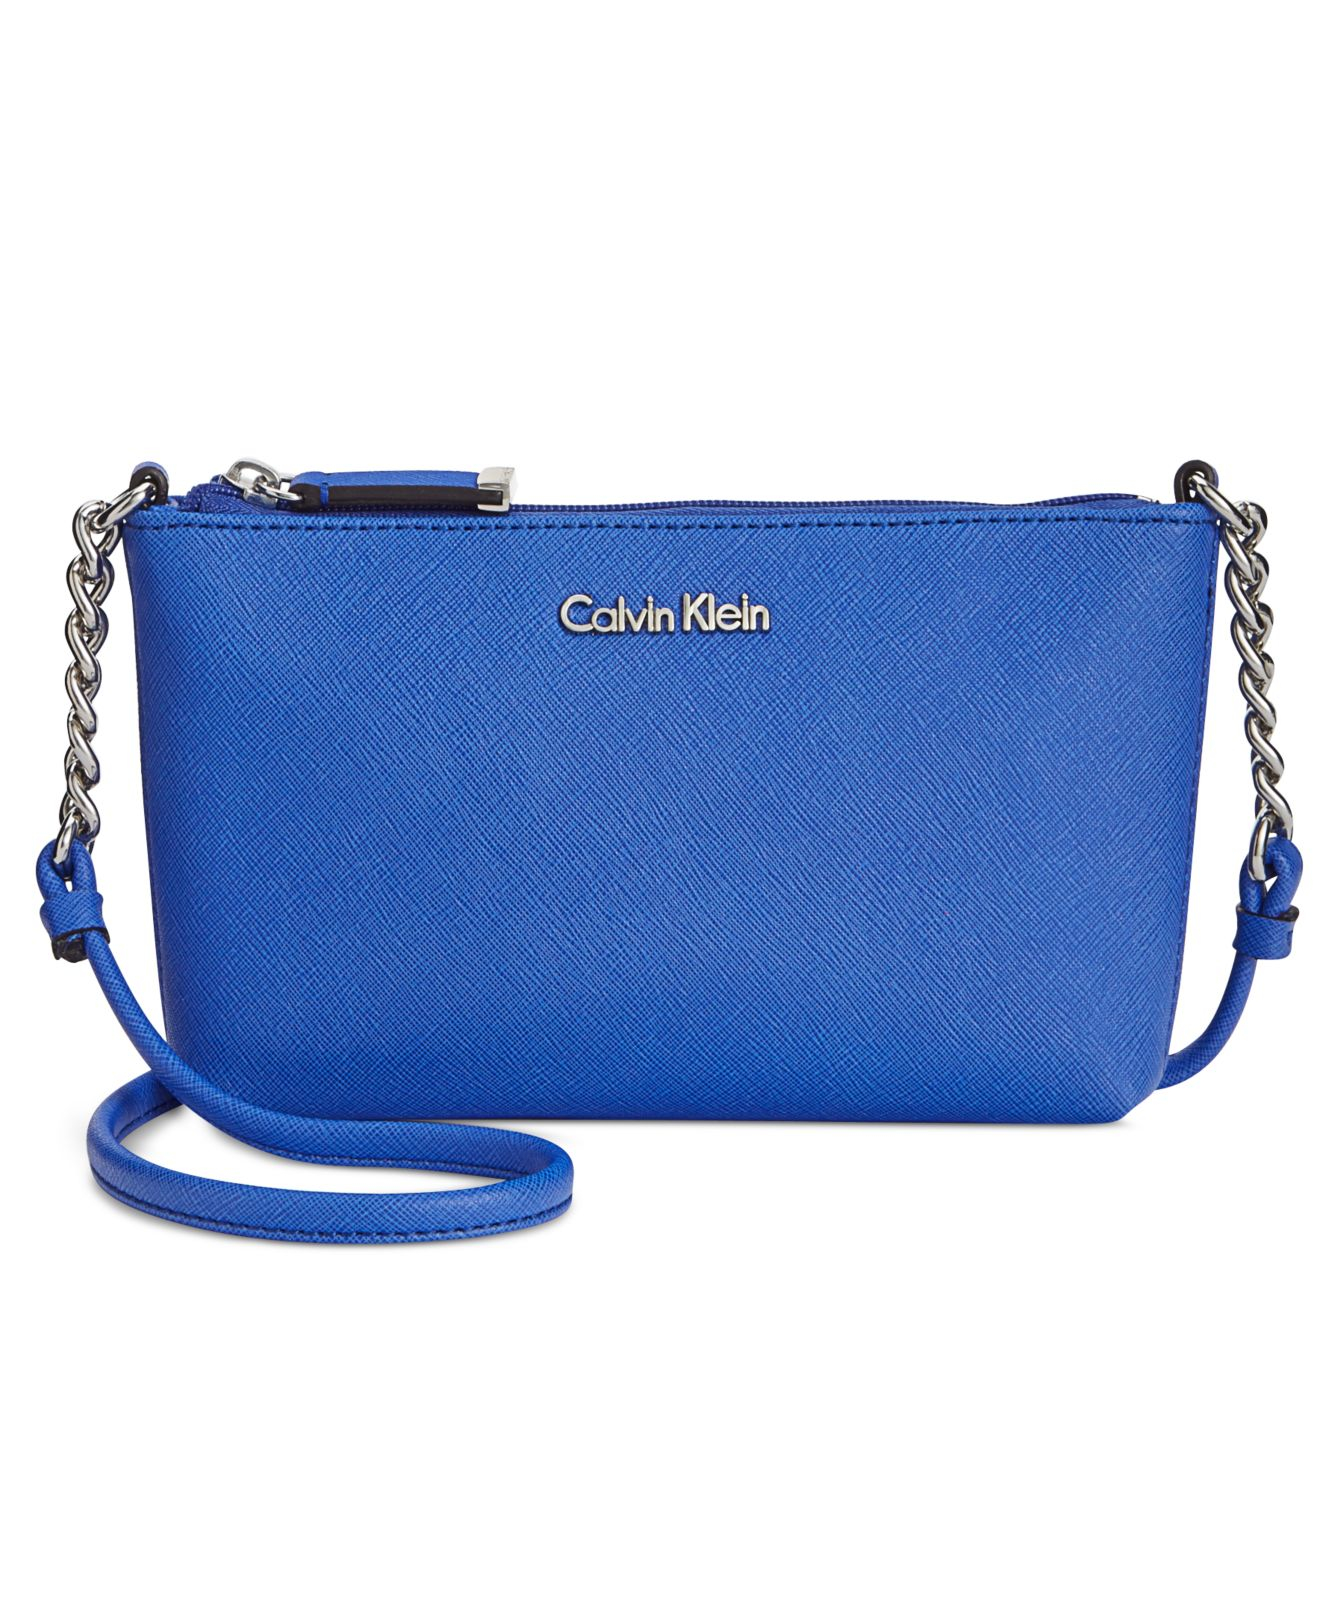 03d724cd0d Gallery. Previously sold at: Macy's · Women's Calvin Klein Crossbody